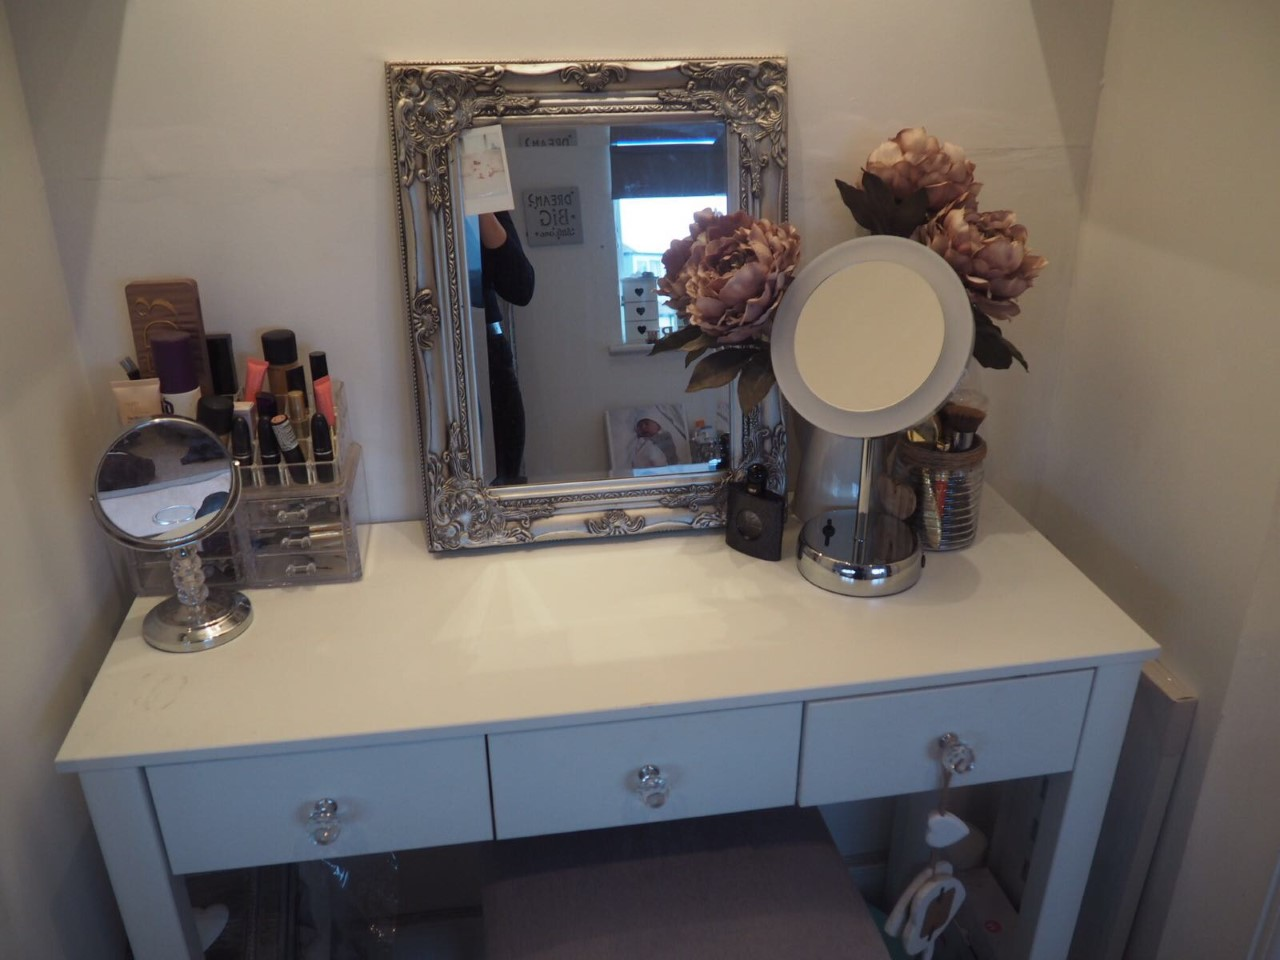 Floral Danielle My Latest Dressing Table Addition A Light Up Mirror